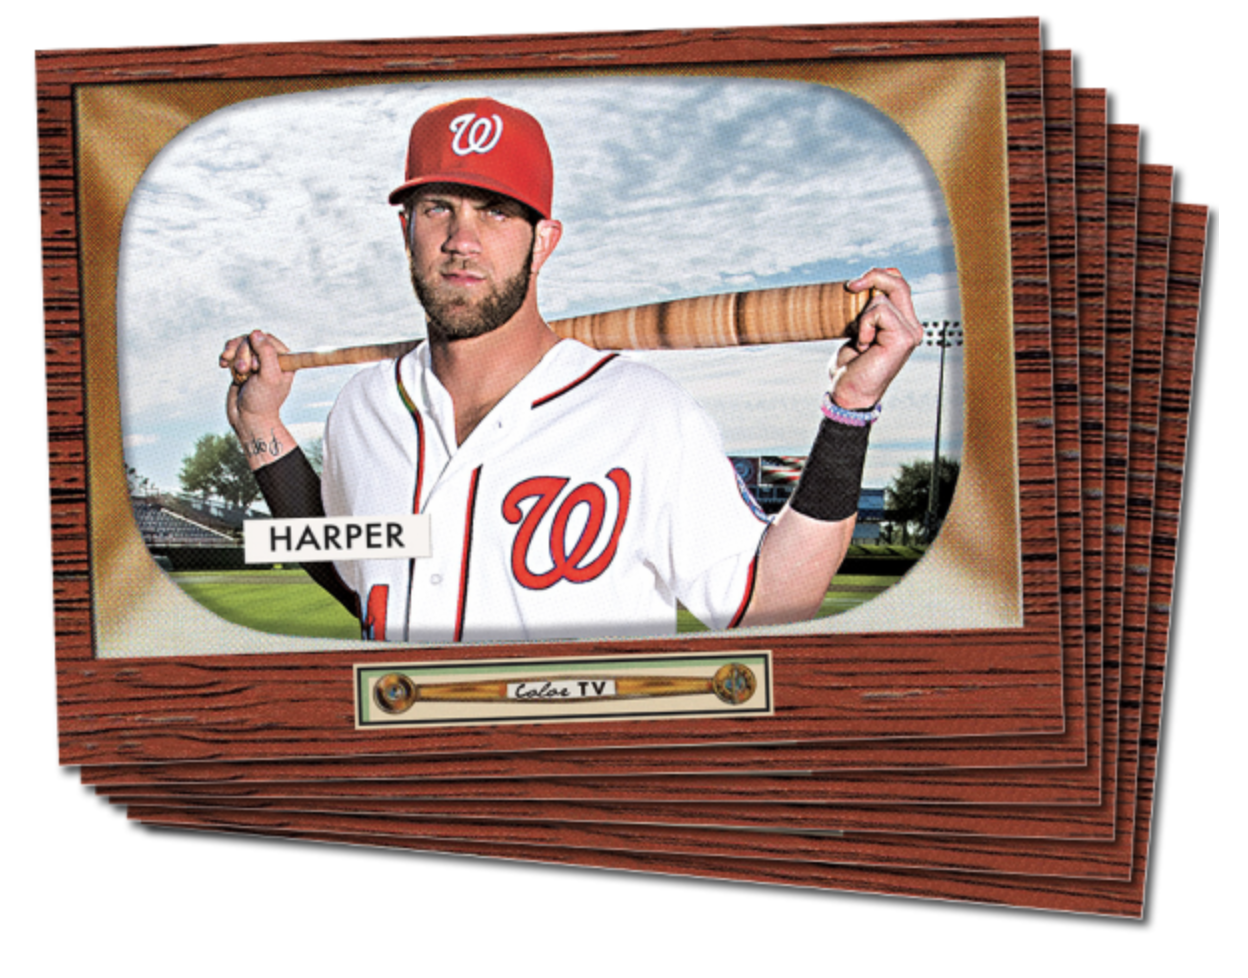 Topps Introduces Topps Tbt Baseball Cards New Stars On